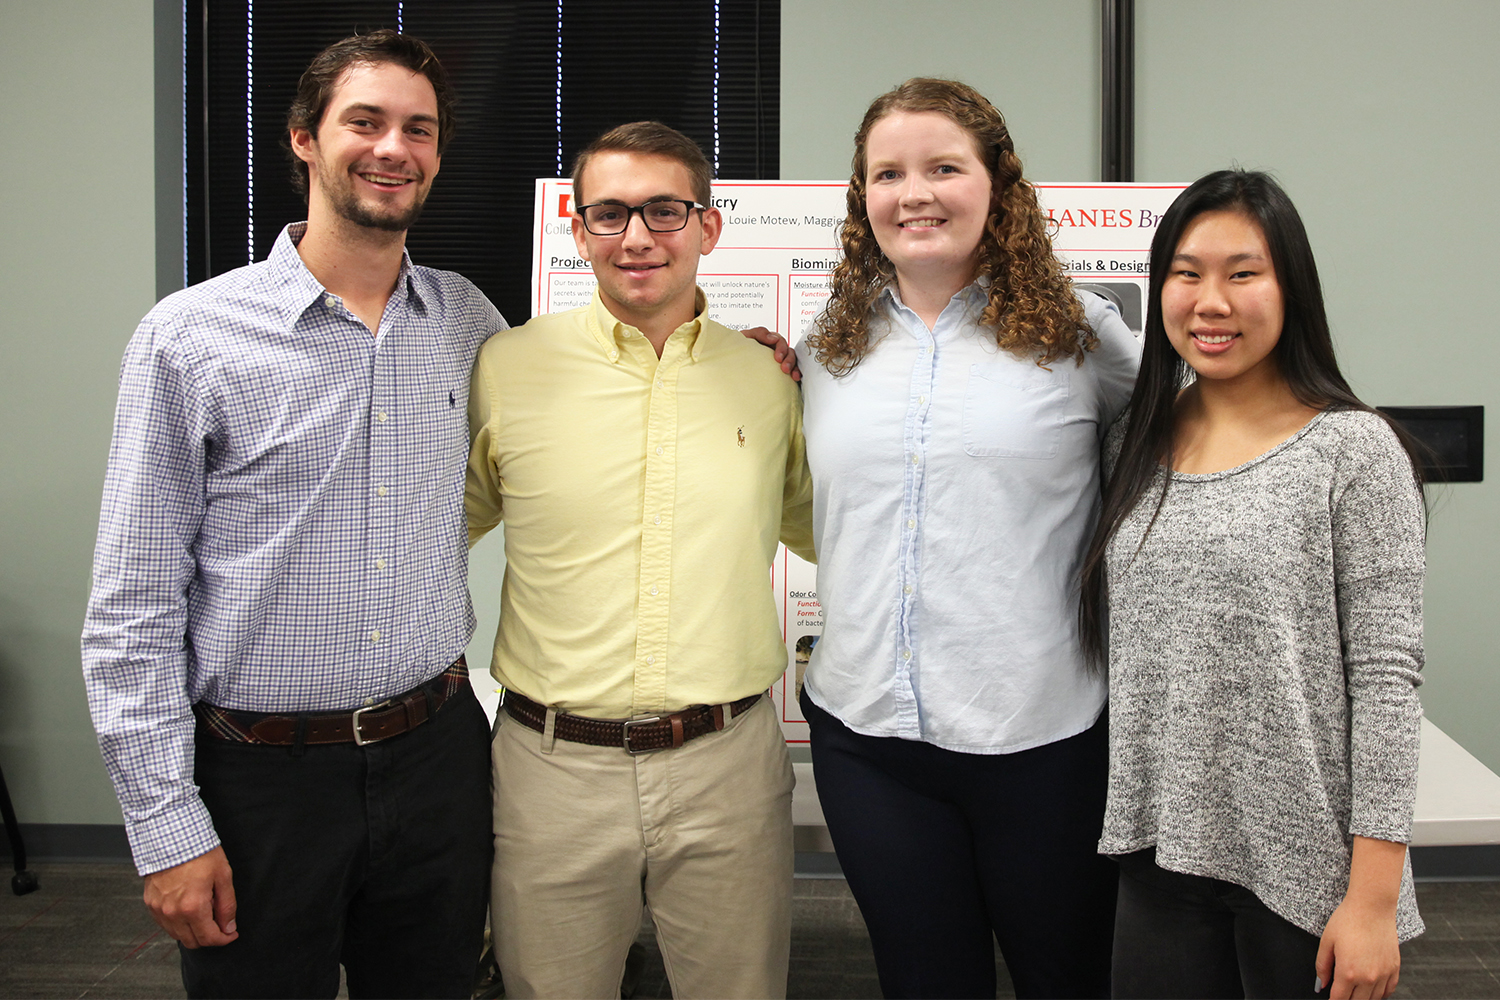 four students in Biomimicry | Sponsor: Hanesbrands project